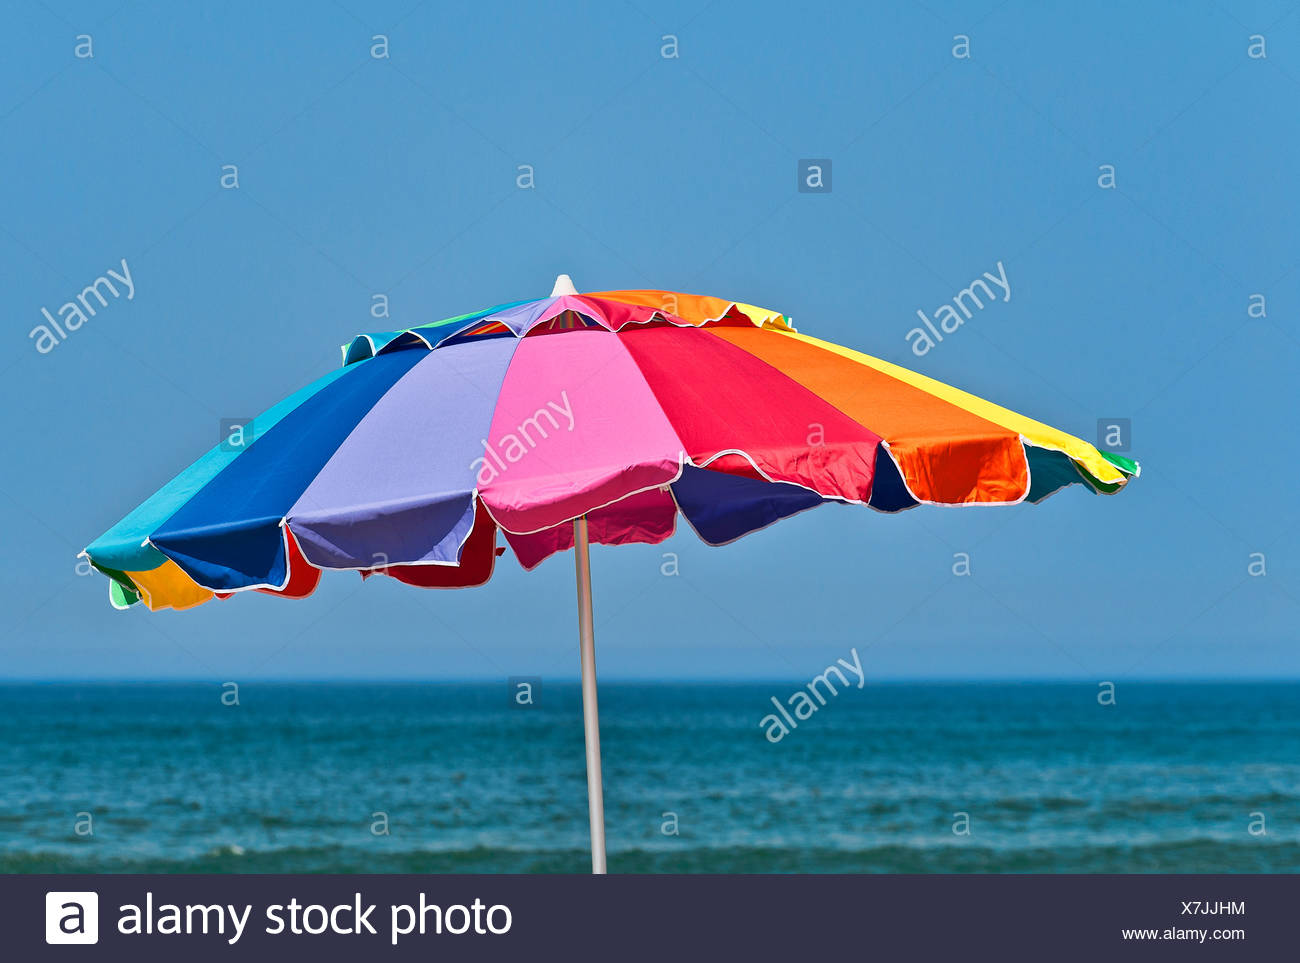 Colorful beach umbrella. - Stock Image